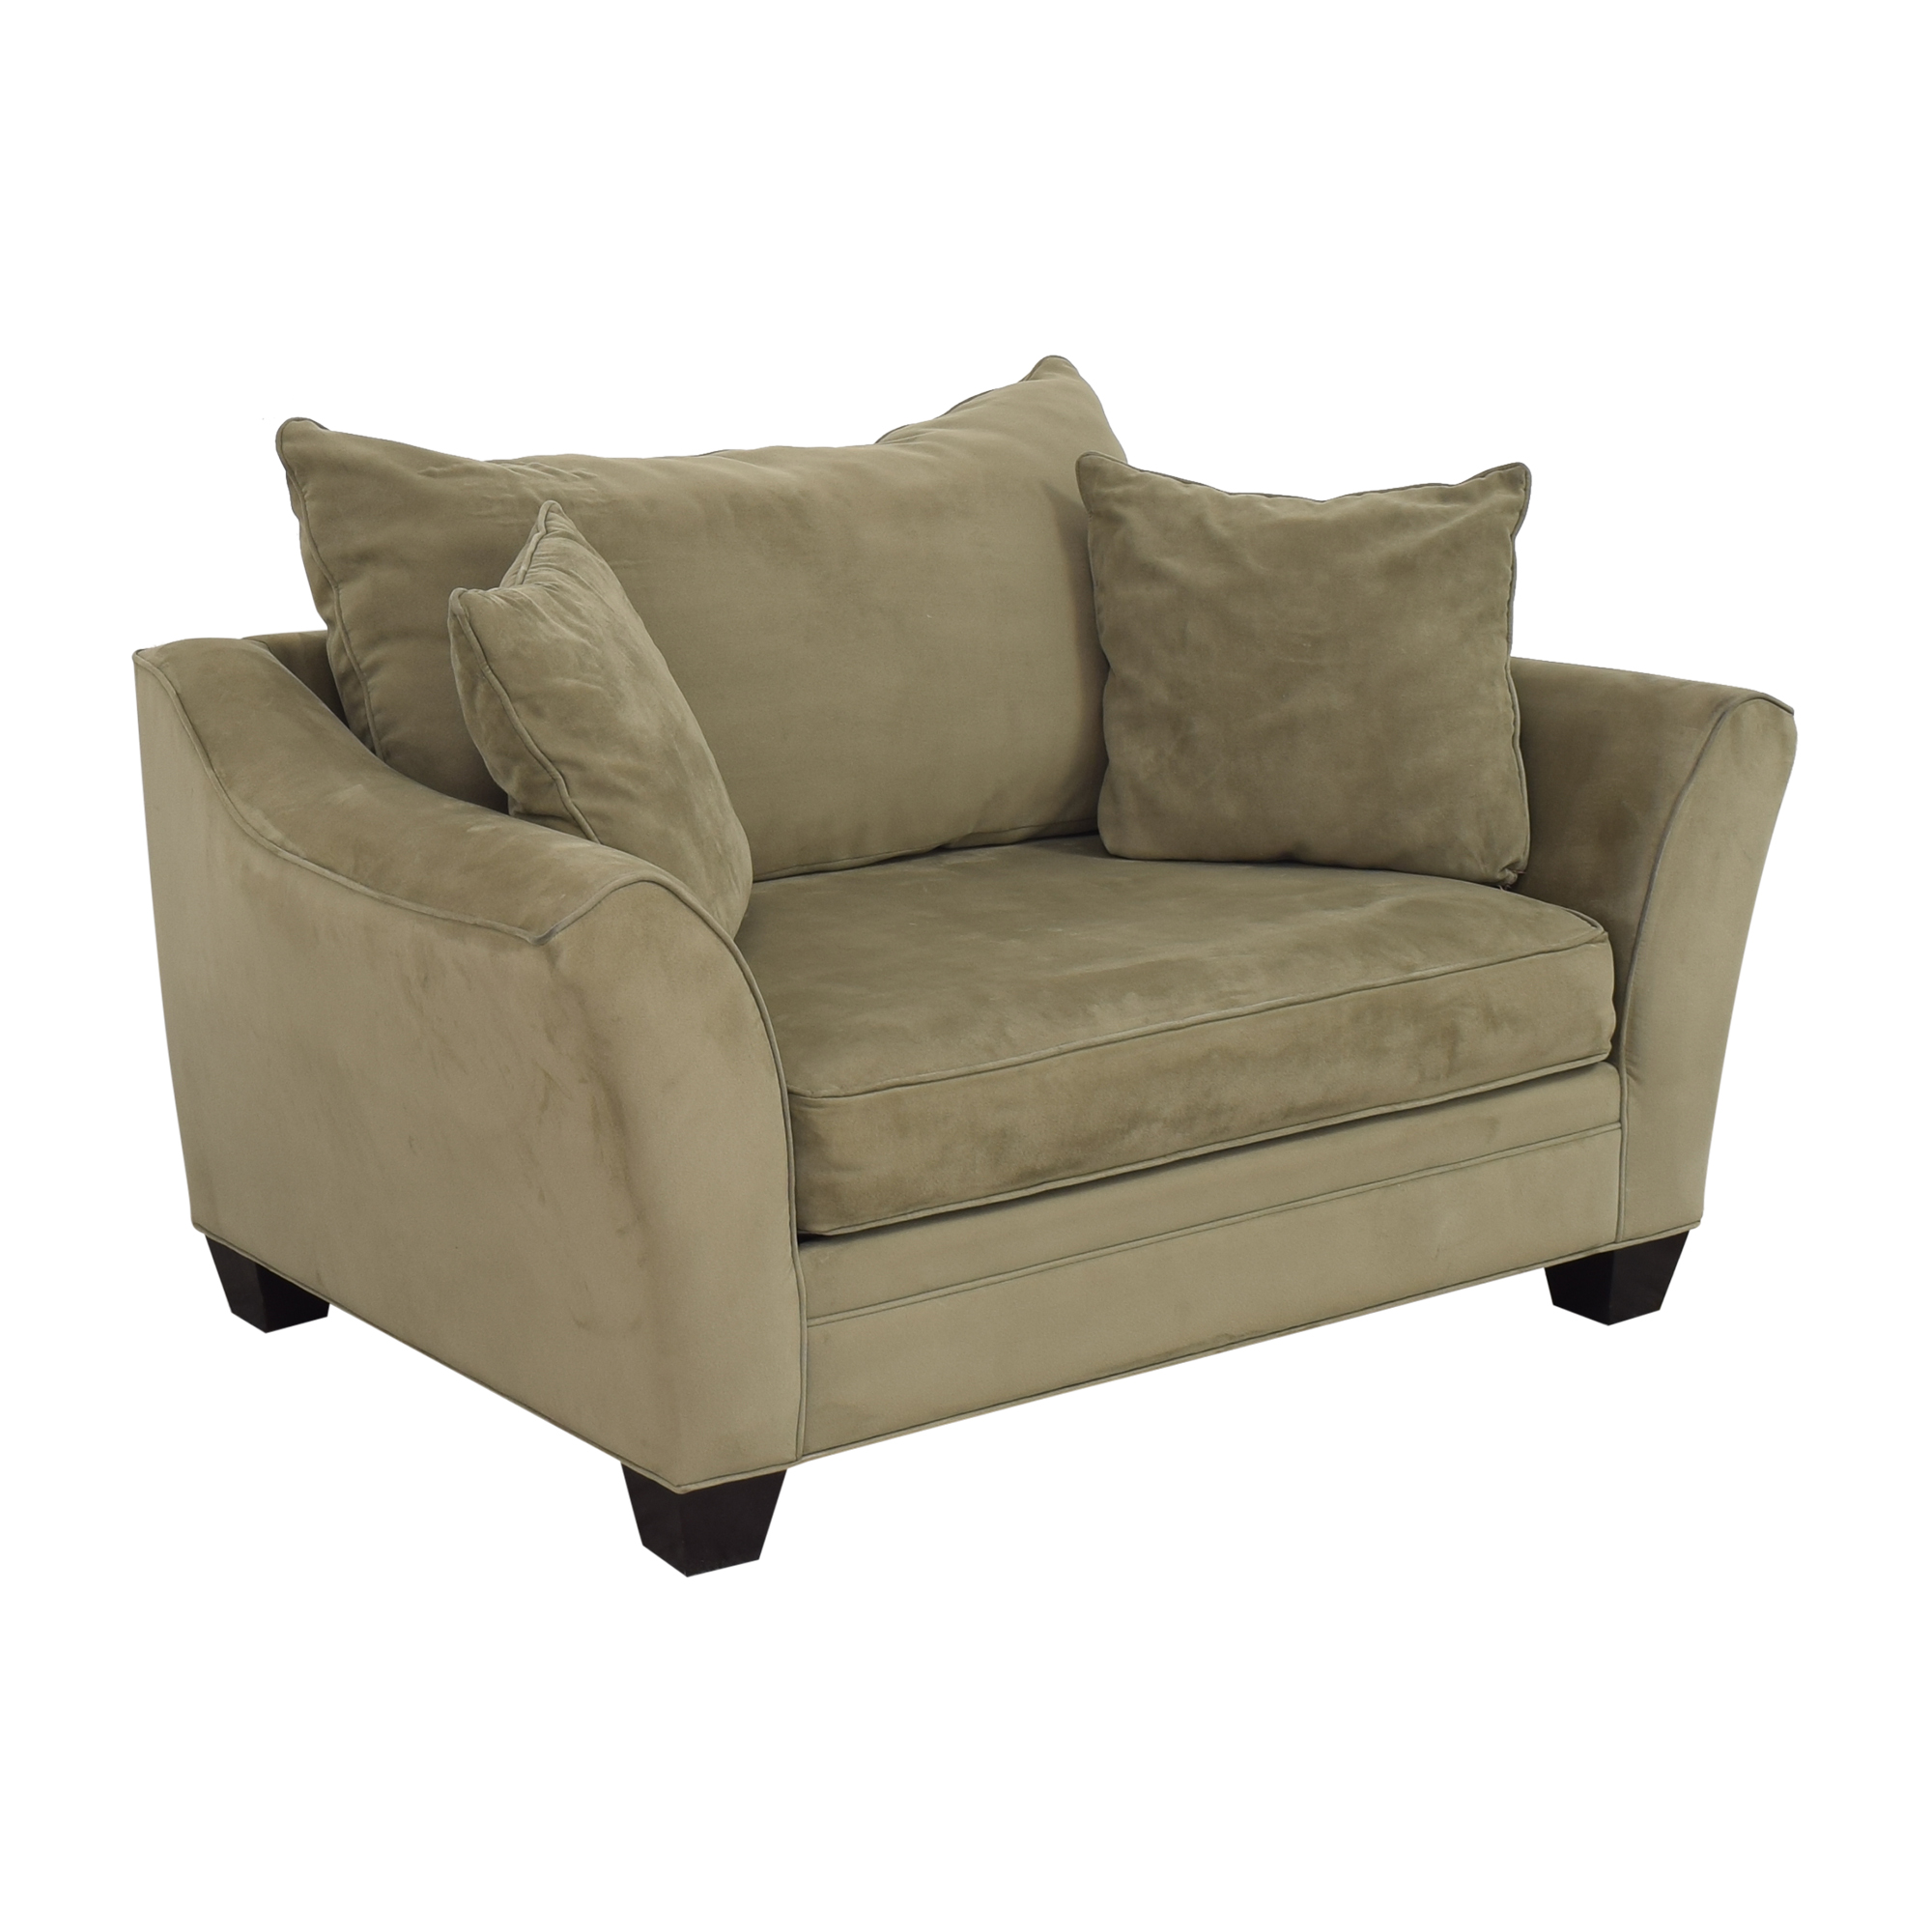 Raymour & Flanigan Raymour & Flanigan Bench Cushion Loveseat on sale